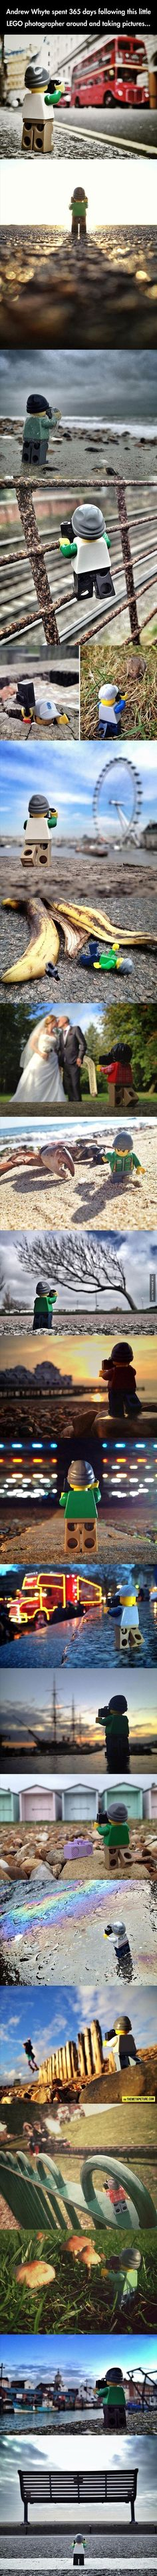 LEGO Photographer Travels The World - The Best Funny Pictures